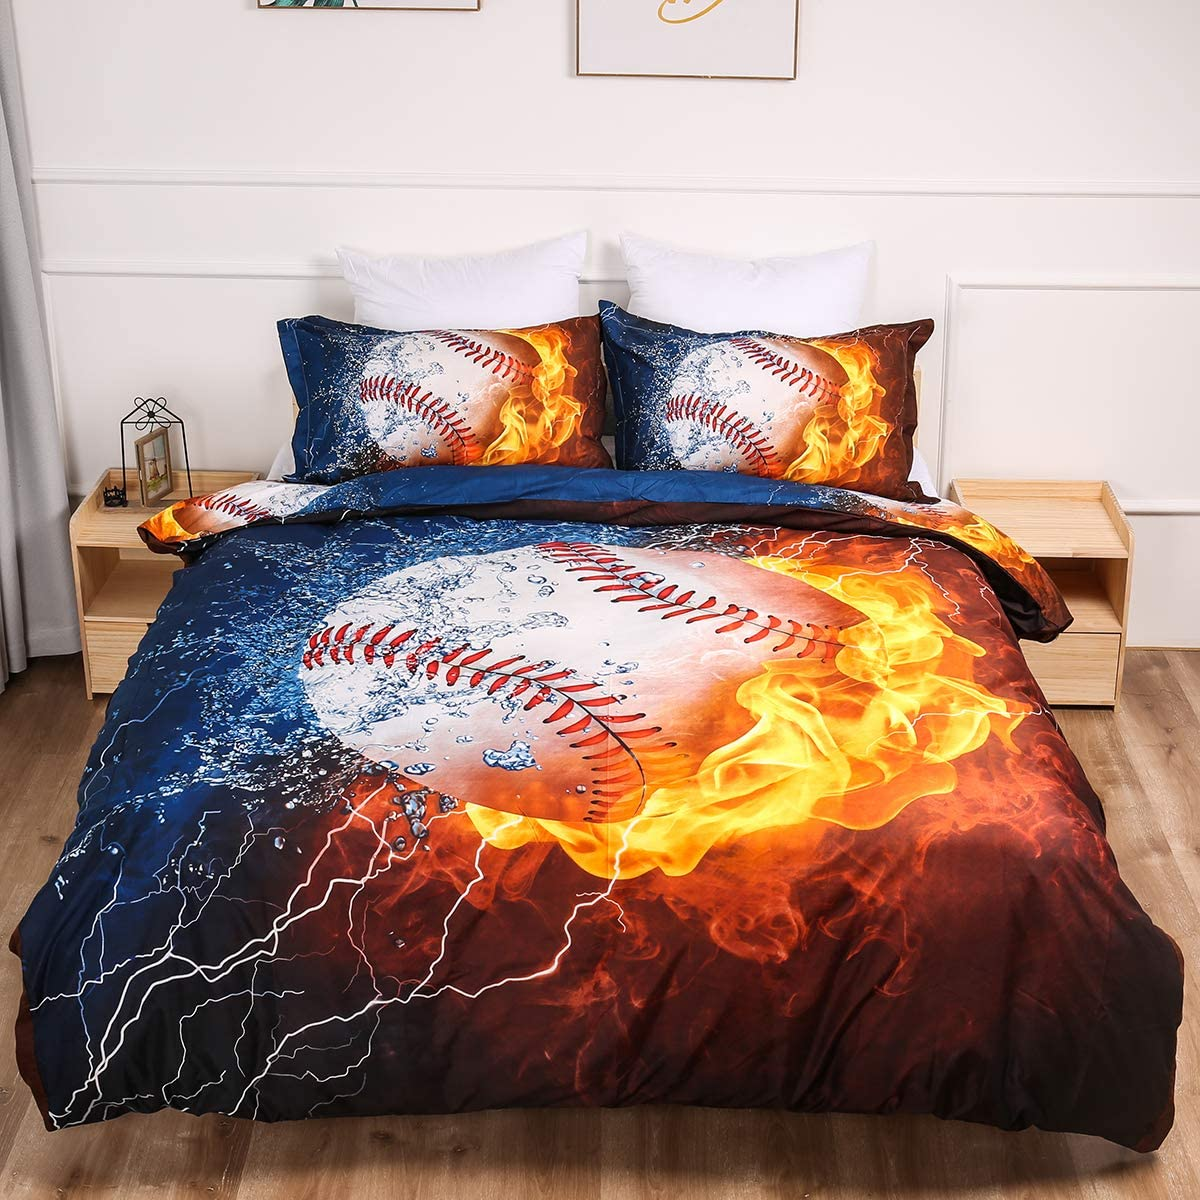 Baseball Duvet Cover Queen 3D Printed Ice and Fire Baseball Bedding Set 3 Pieces Microfiber Comforter Cover Set with 2 Pillowcases Sports Duvet Cover for Baseball Fans Boys Girls 90x90